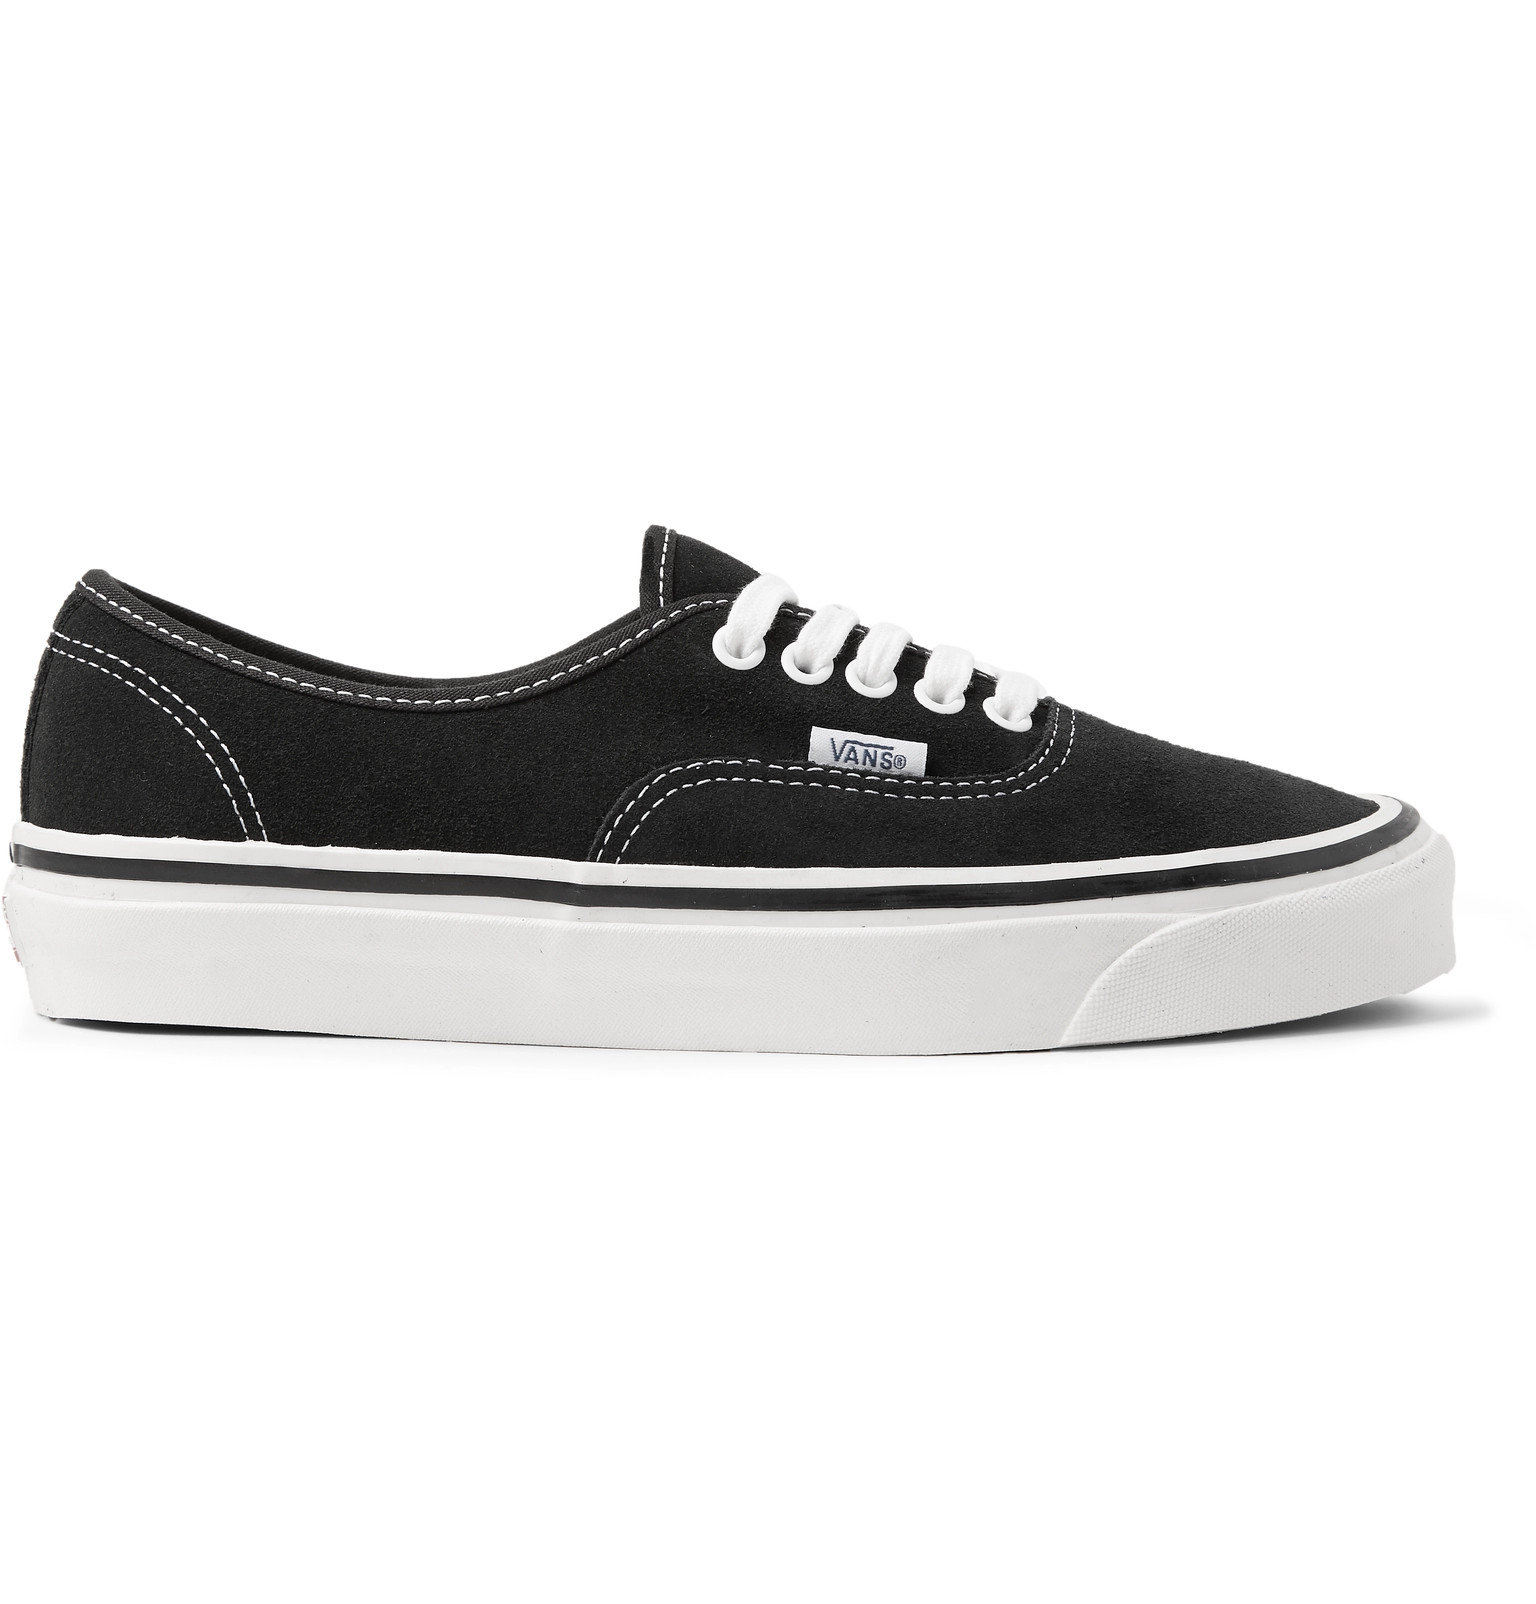 VansAnaheim Authentic 44 DX Suede Sneakers. £65. Tap to Close 5bb9bb298